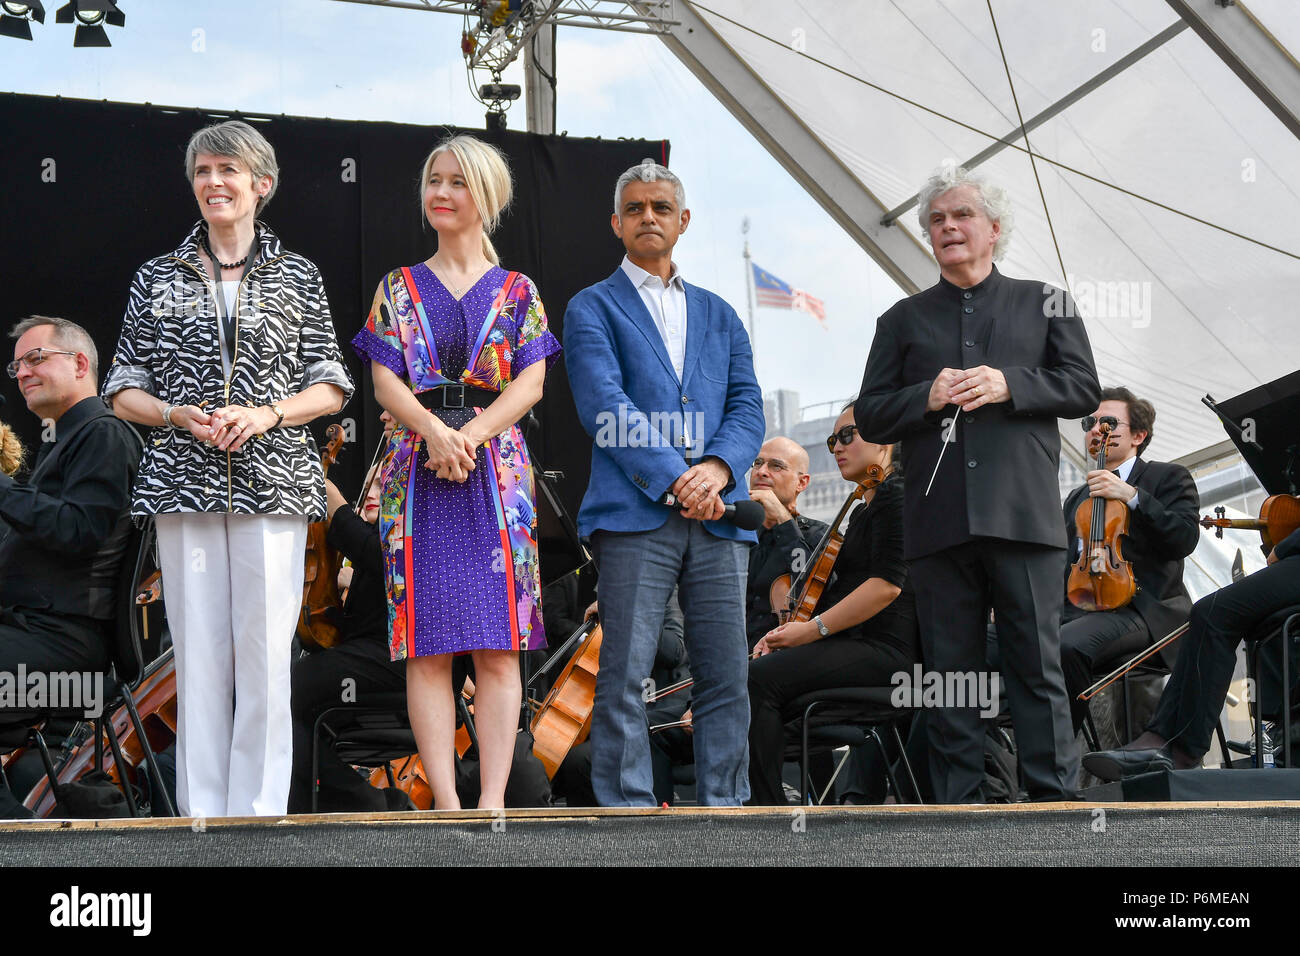 London, UK. 1st July, 2018. Kathryn McDowell,Sadiq Khan,Sir Simon Rattle at the BMW Classics + live streamed on YouTube in Trafalgar Square on a hot weather in London, UK on July 1st 2018. Credit: Picture Capital/Alamy Live News - Stock Image